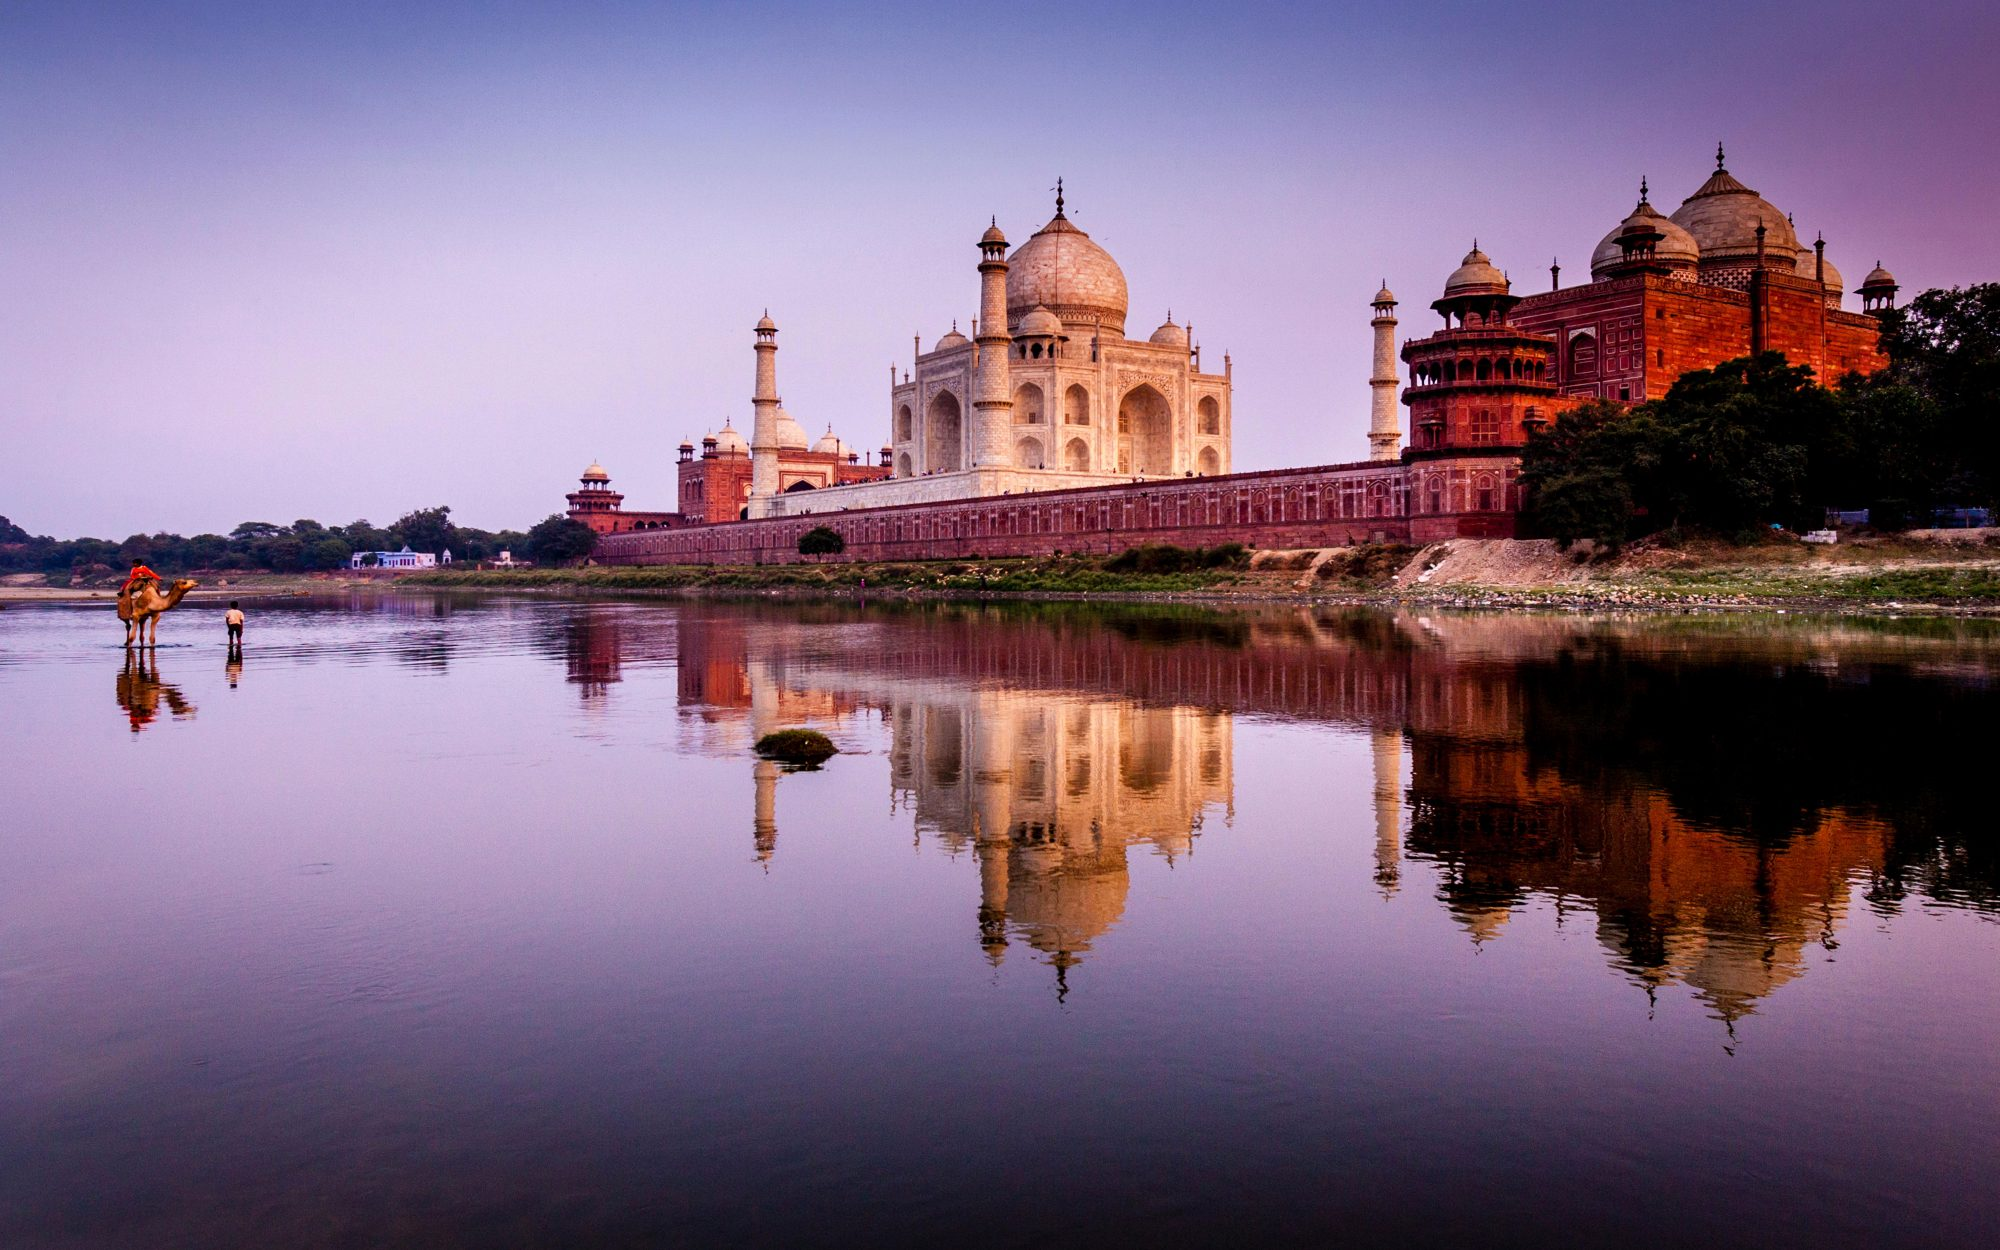 The River Cruise Guide to Asia: The Next Frontier